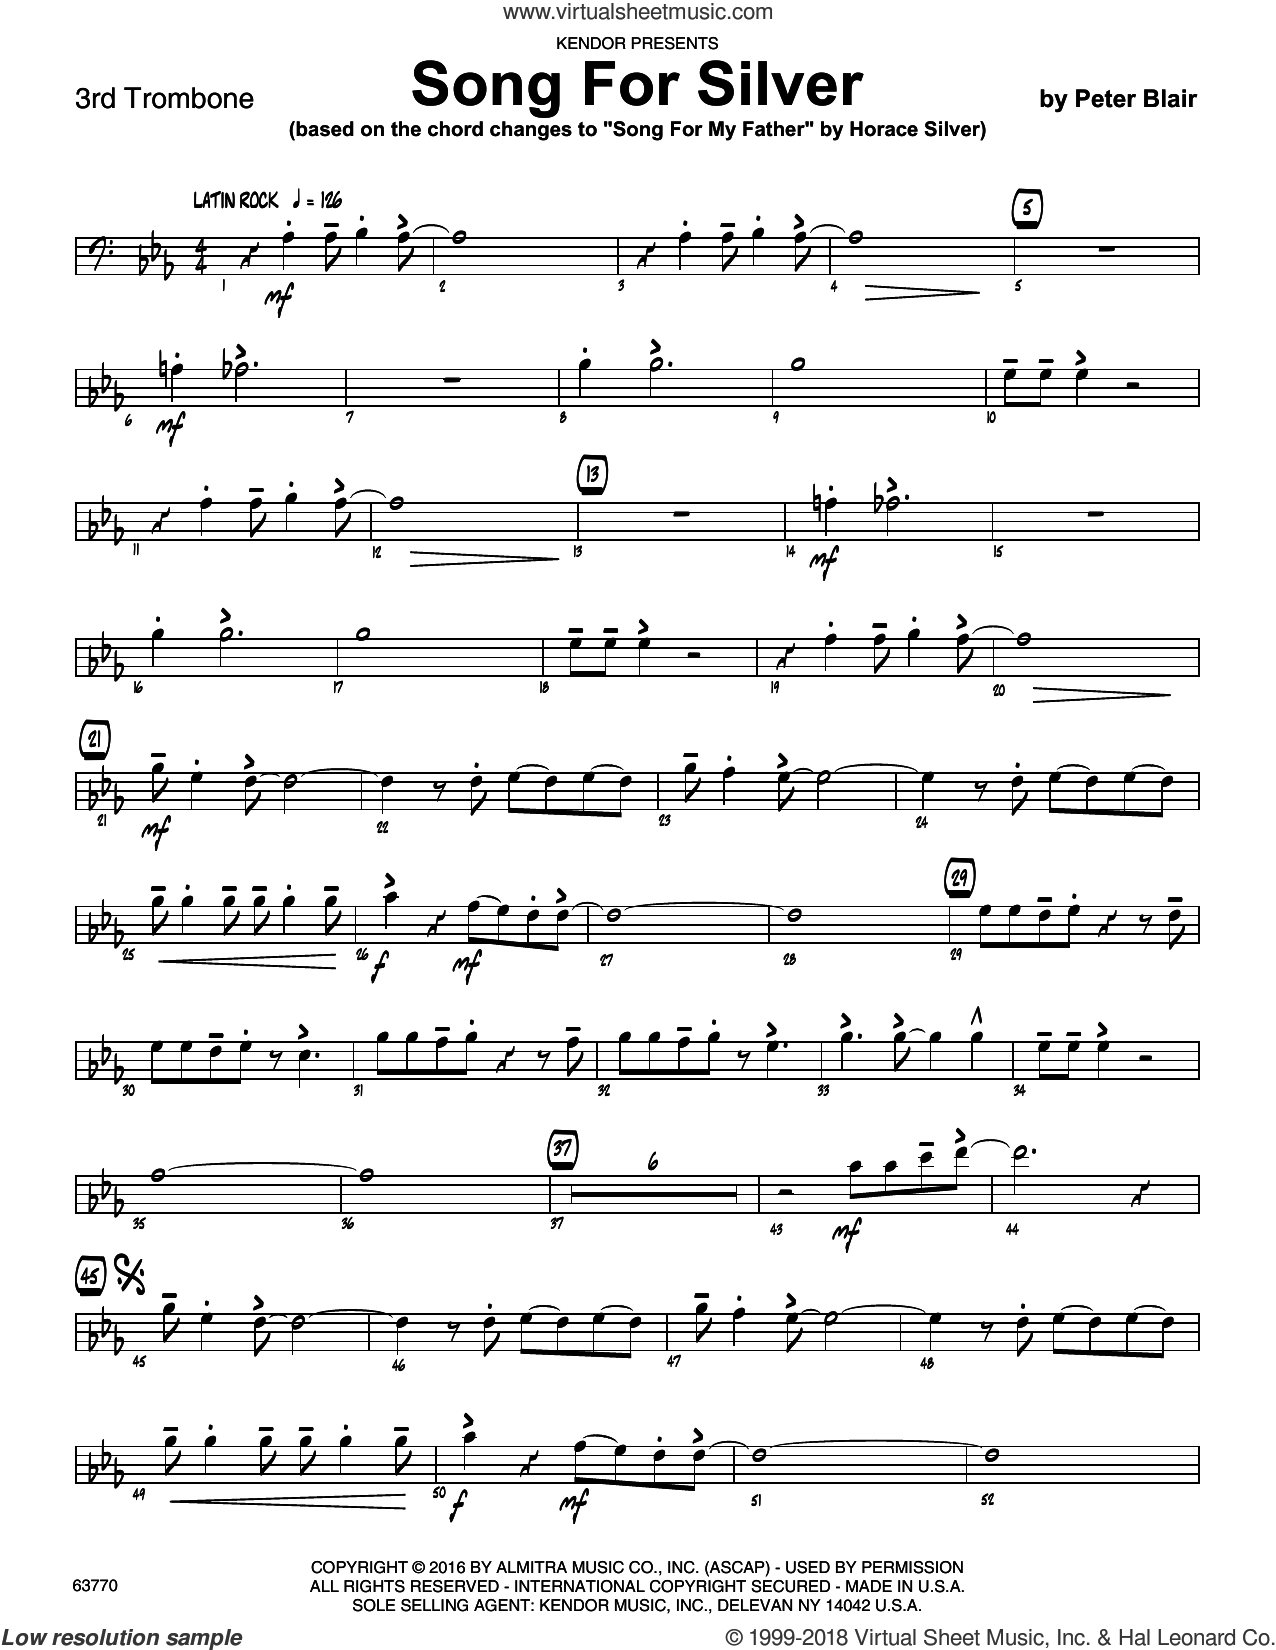 Song For Silver (based on Song For My Father by Horace Silver) sheet music for jazz band (3rd trombone) by Peter Blair, intermediate skill level